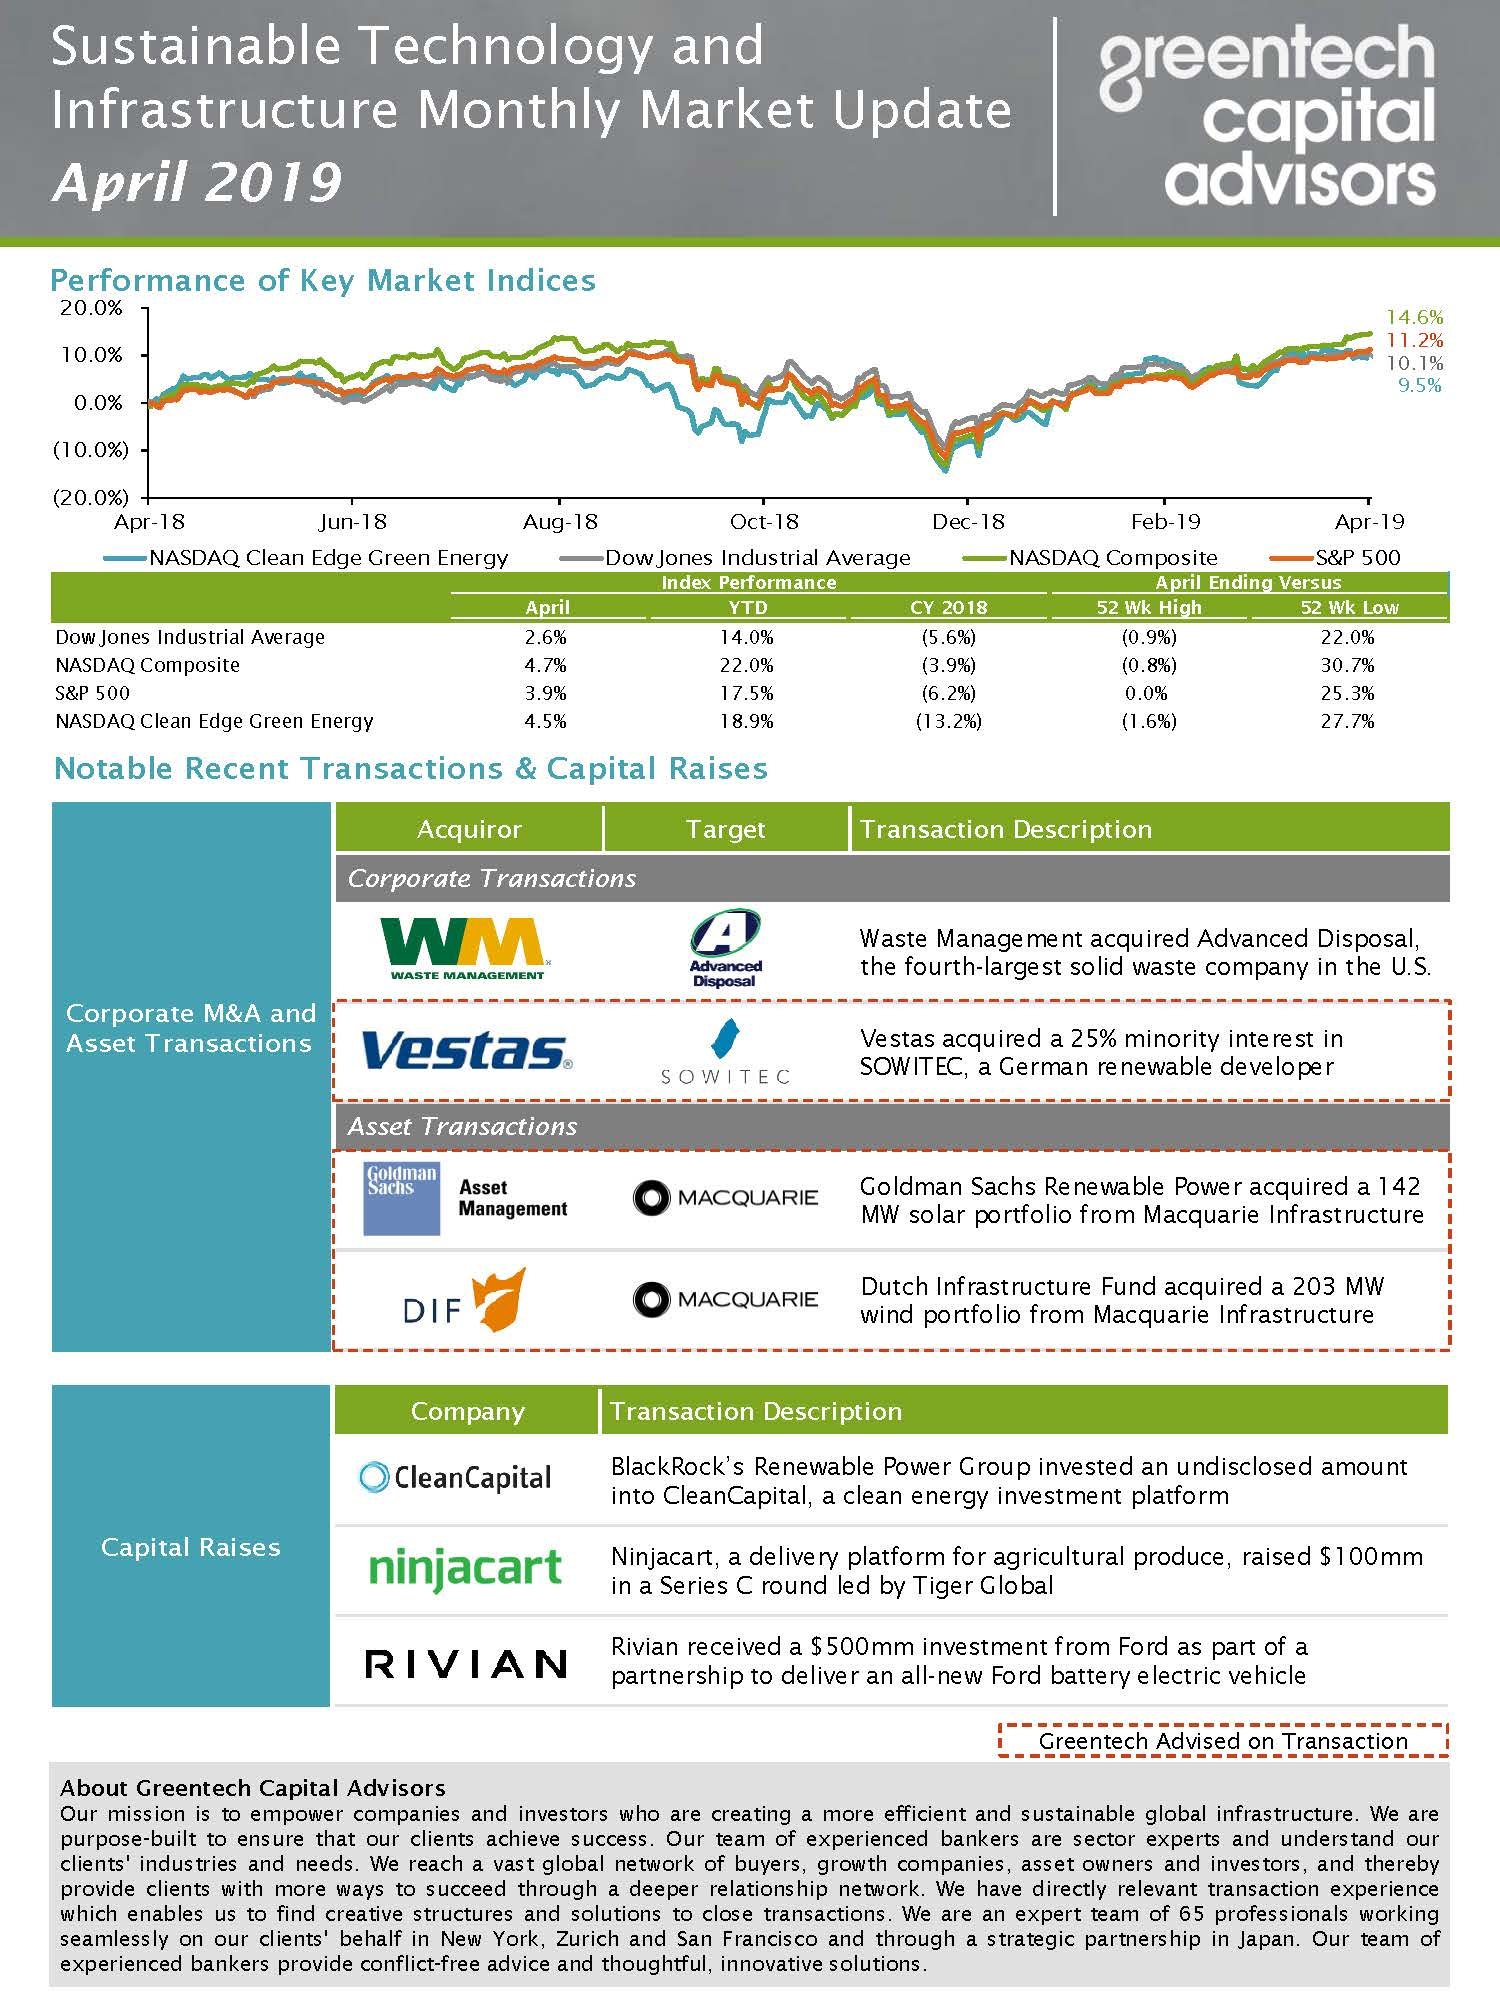 Sustainable Investing Monthly Market Update - April 2019